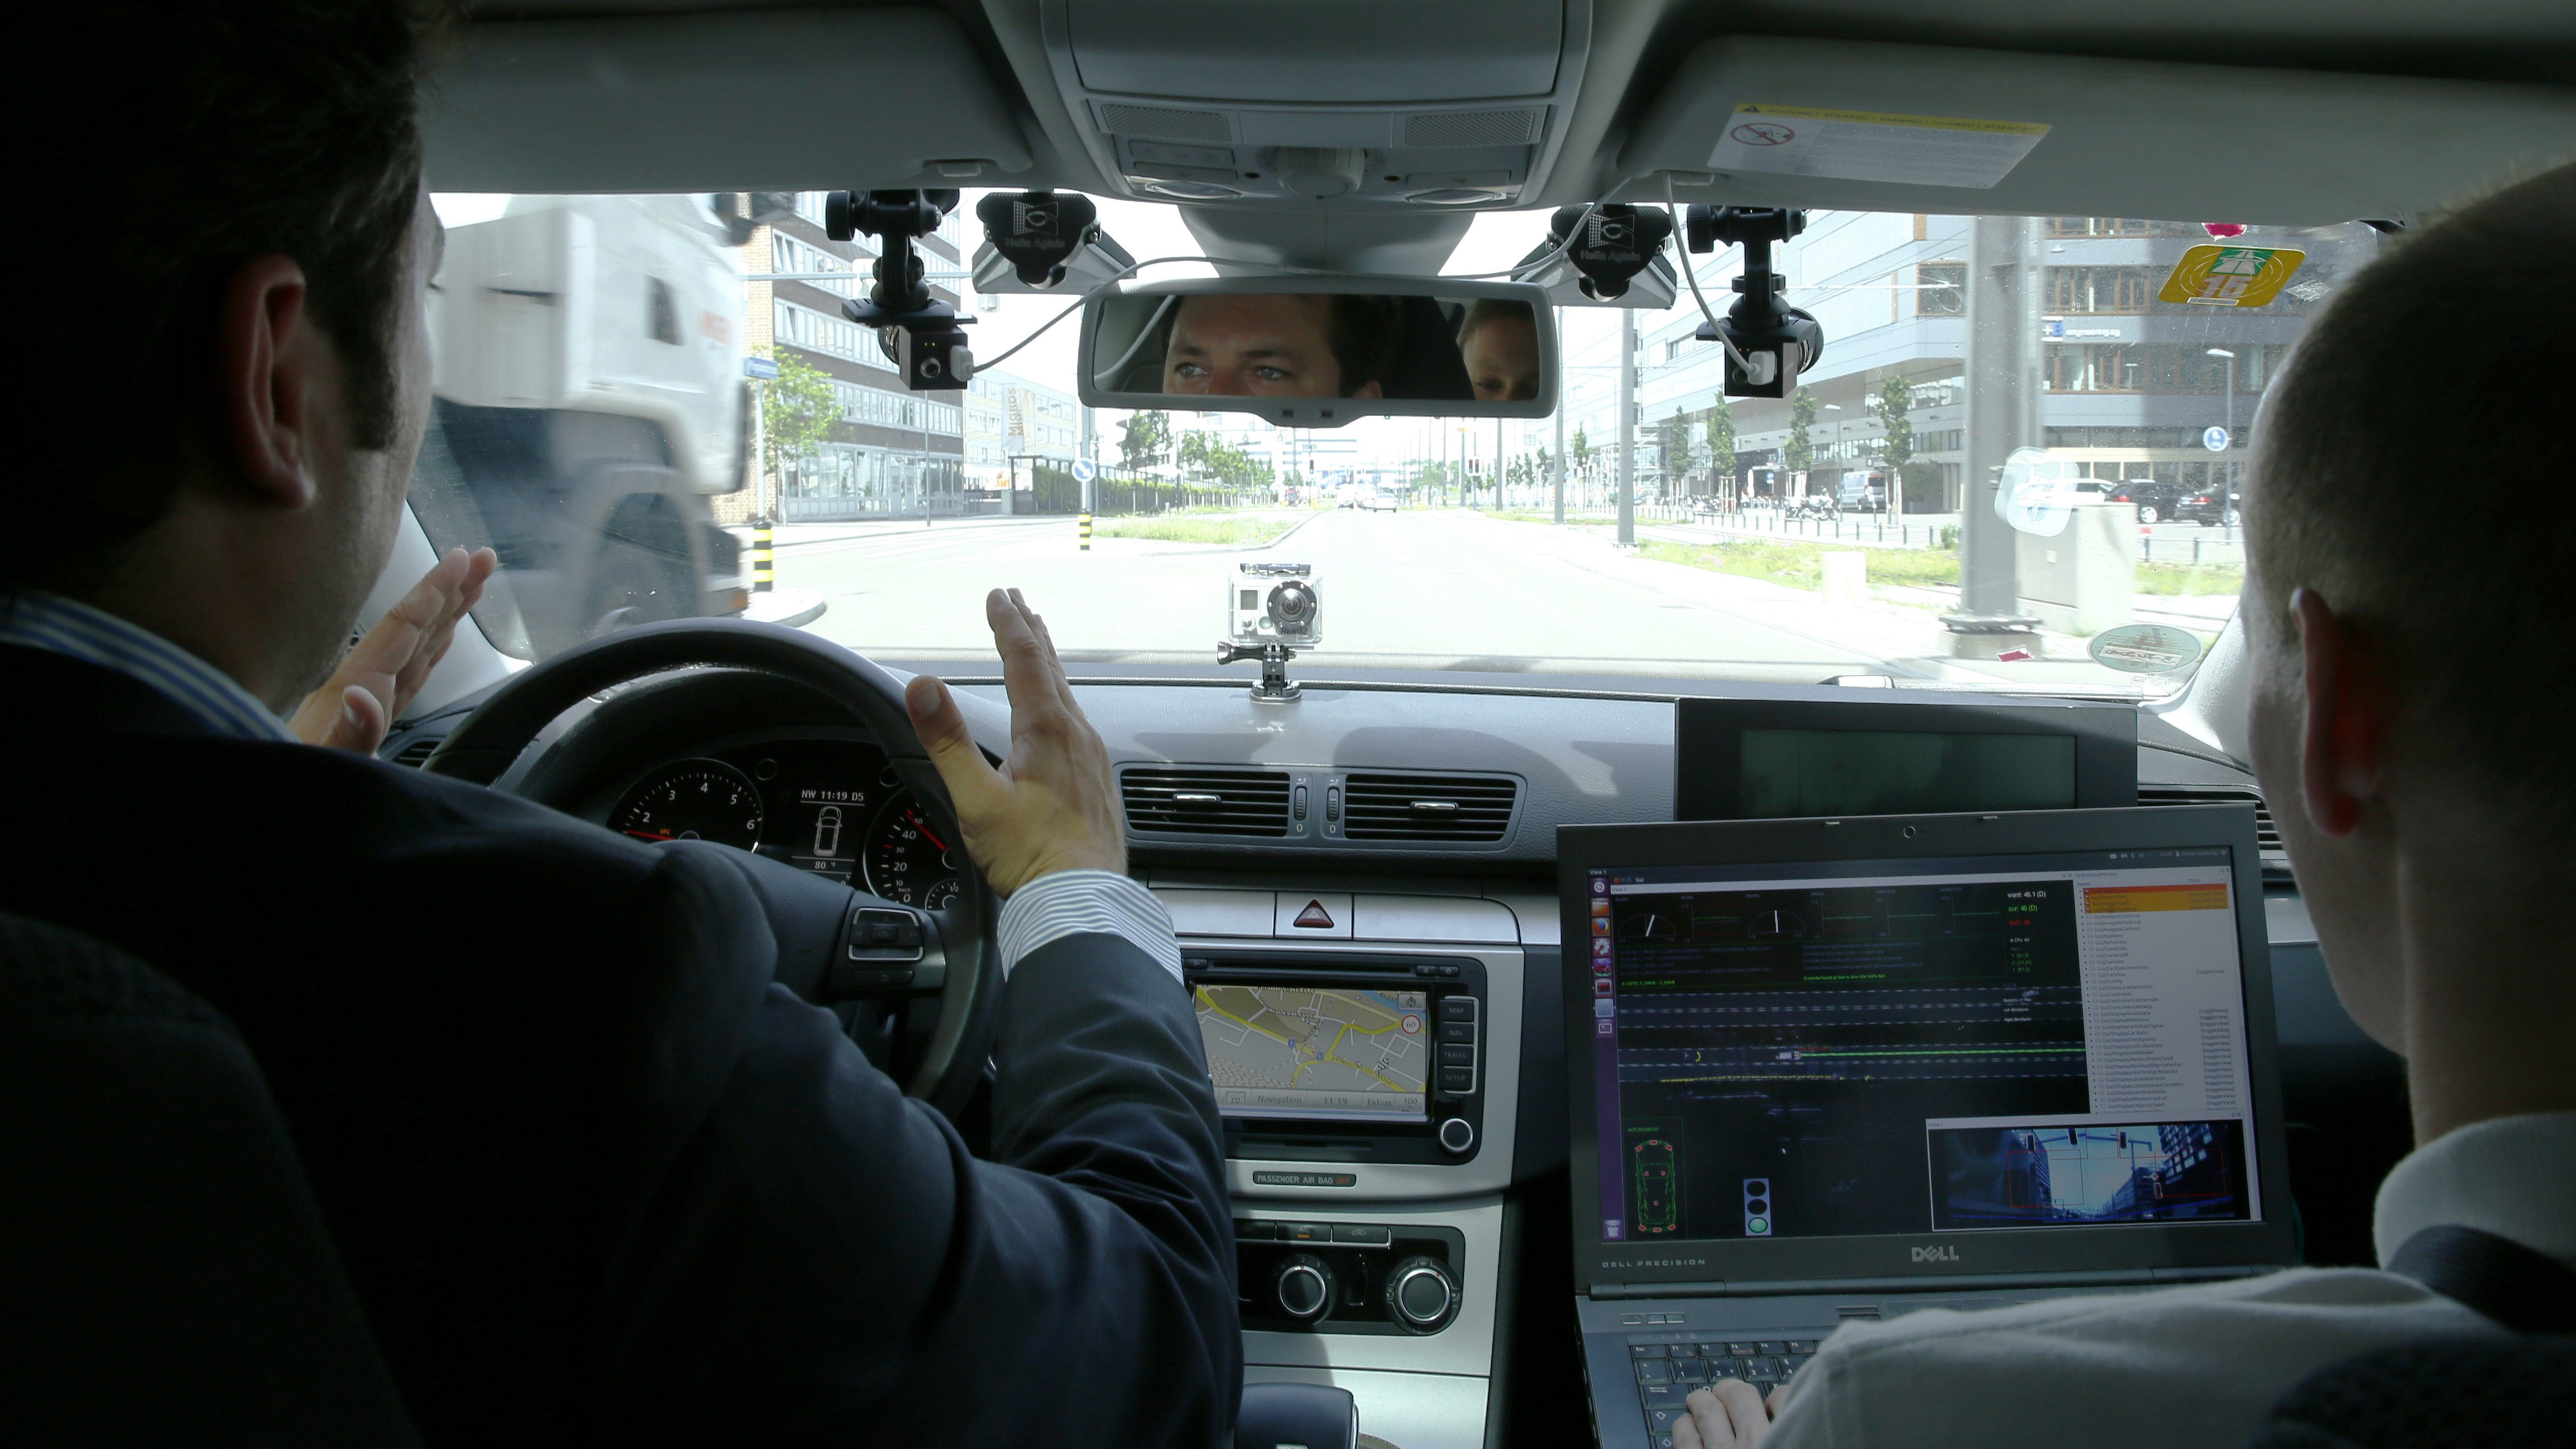 Two men in a self-driving car.